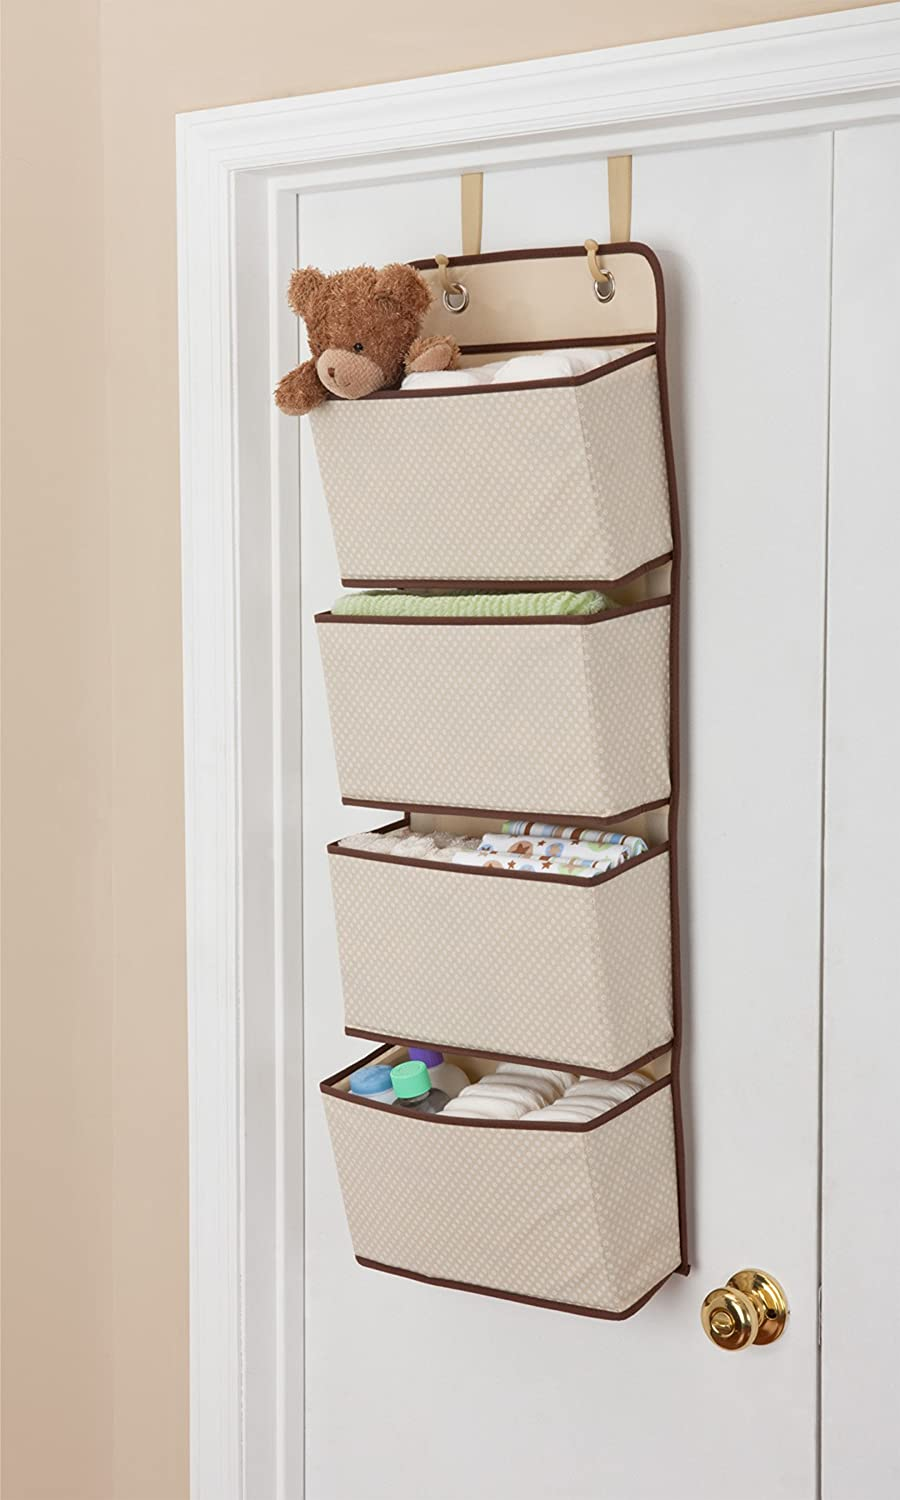 Amazoncom Delta 4 Pocket Nursery Over the Door Organizer Beige